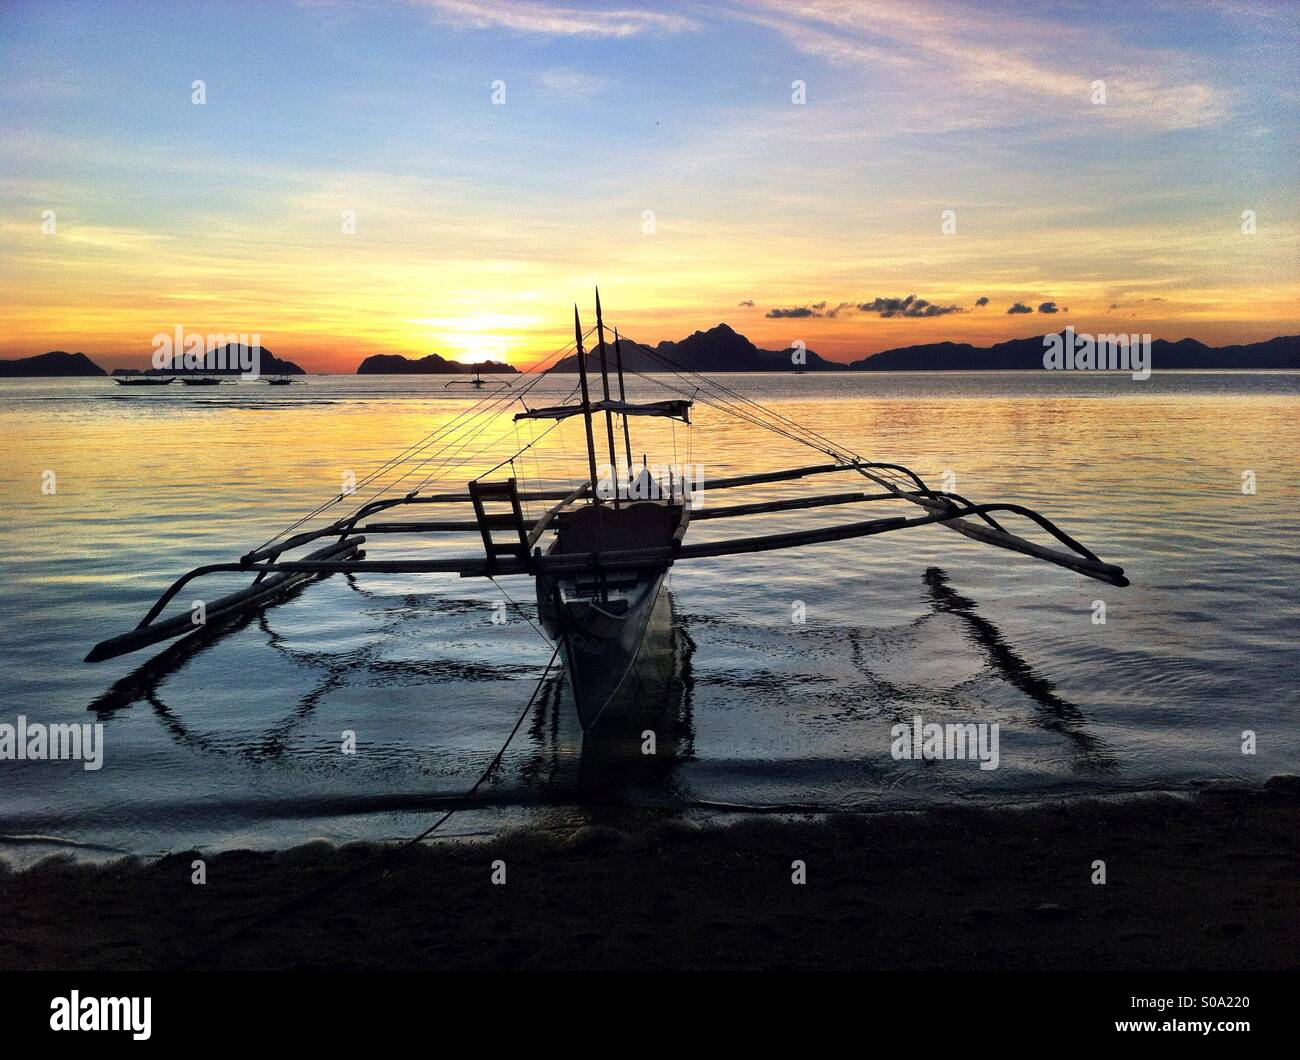 Silhouette of traditional Philippine fishing bangka boat in El Nido on Palawan island with Thousand islands at sunset - Stock Image